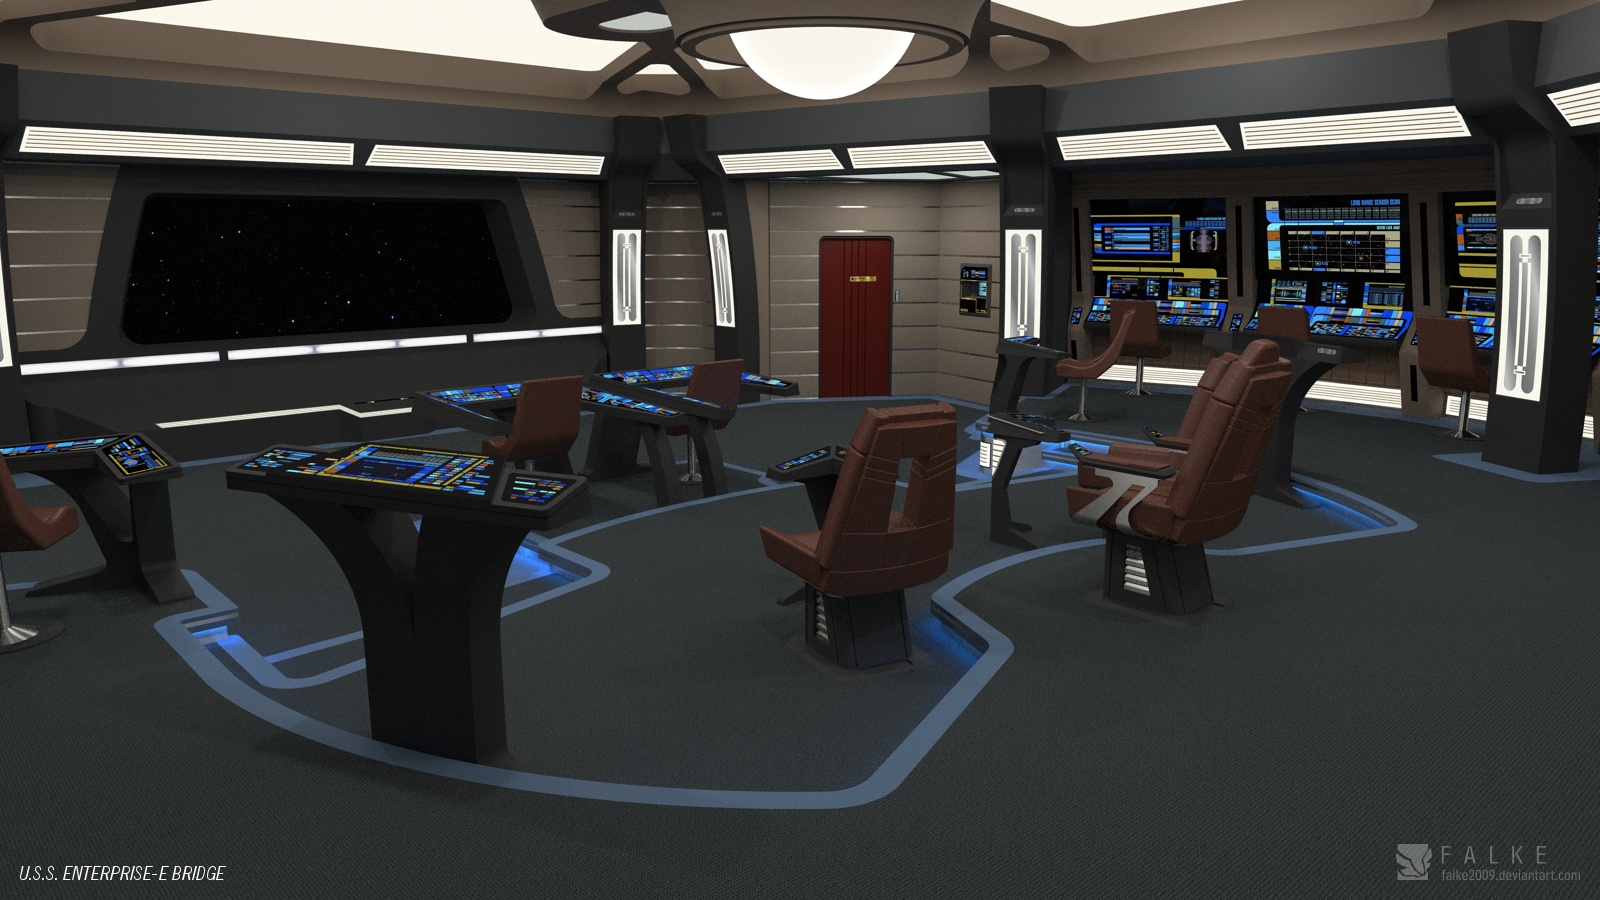 Enterprise E Conference Room